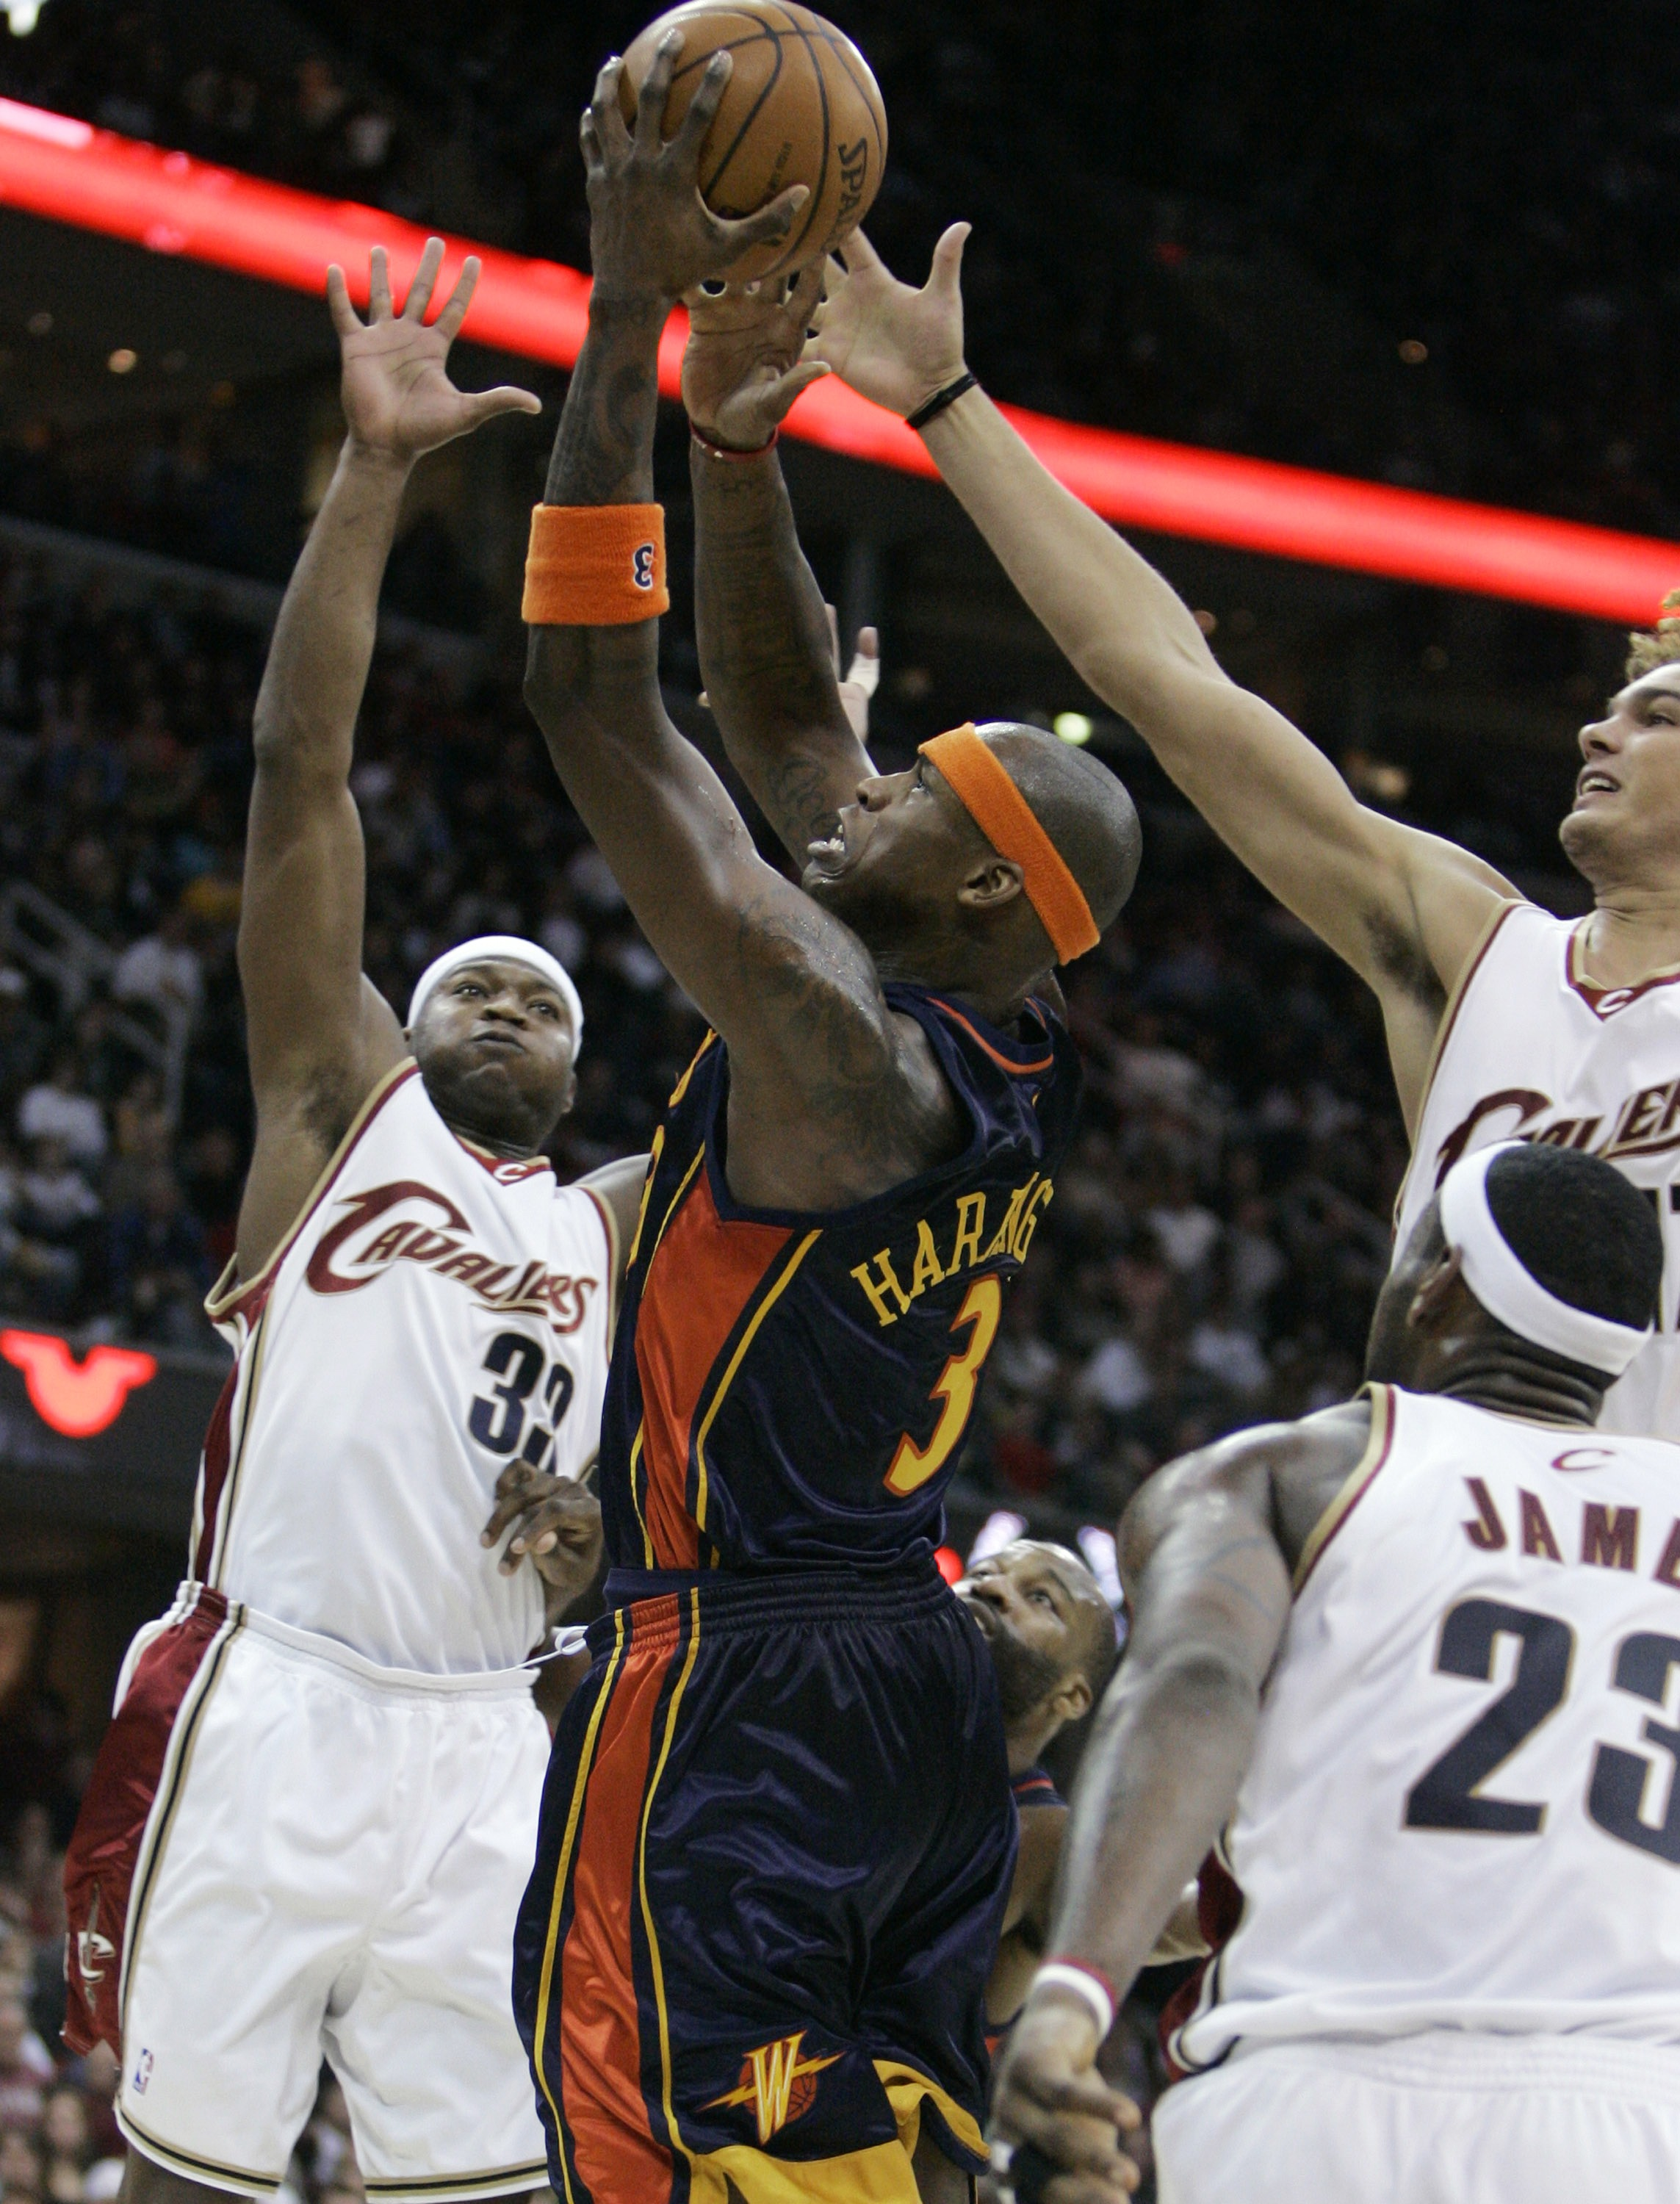 The Golden State Warriors' Al Harrington, center, goes to the basket against the Cleveland Cavaliers' Devin Brown, left, Anderson Varejao, background ...